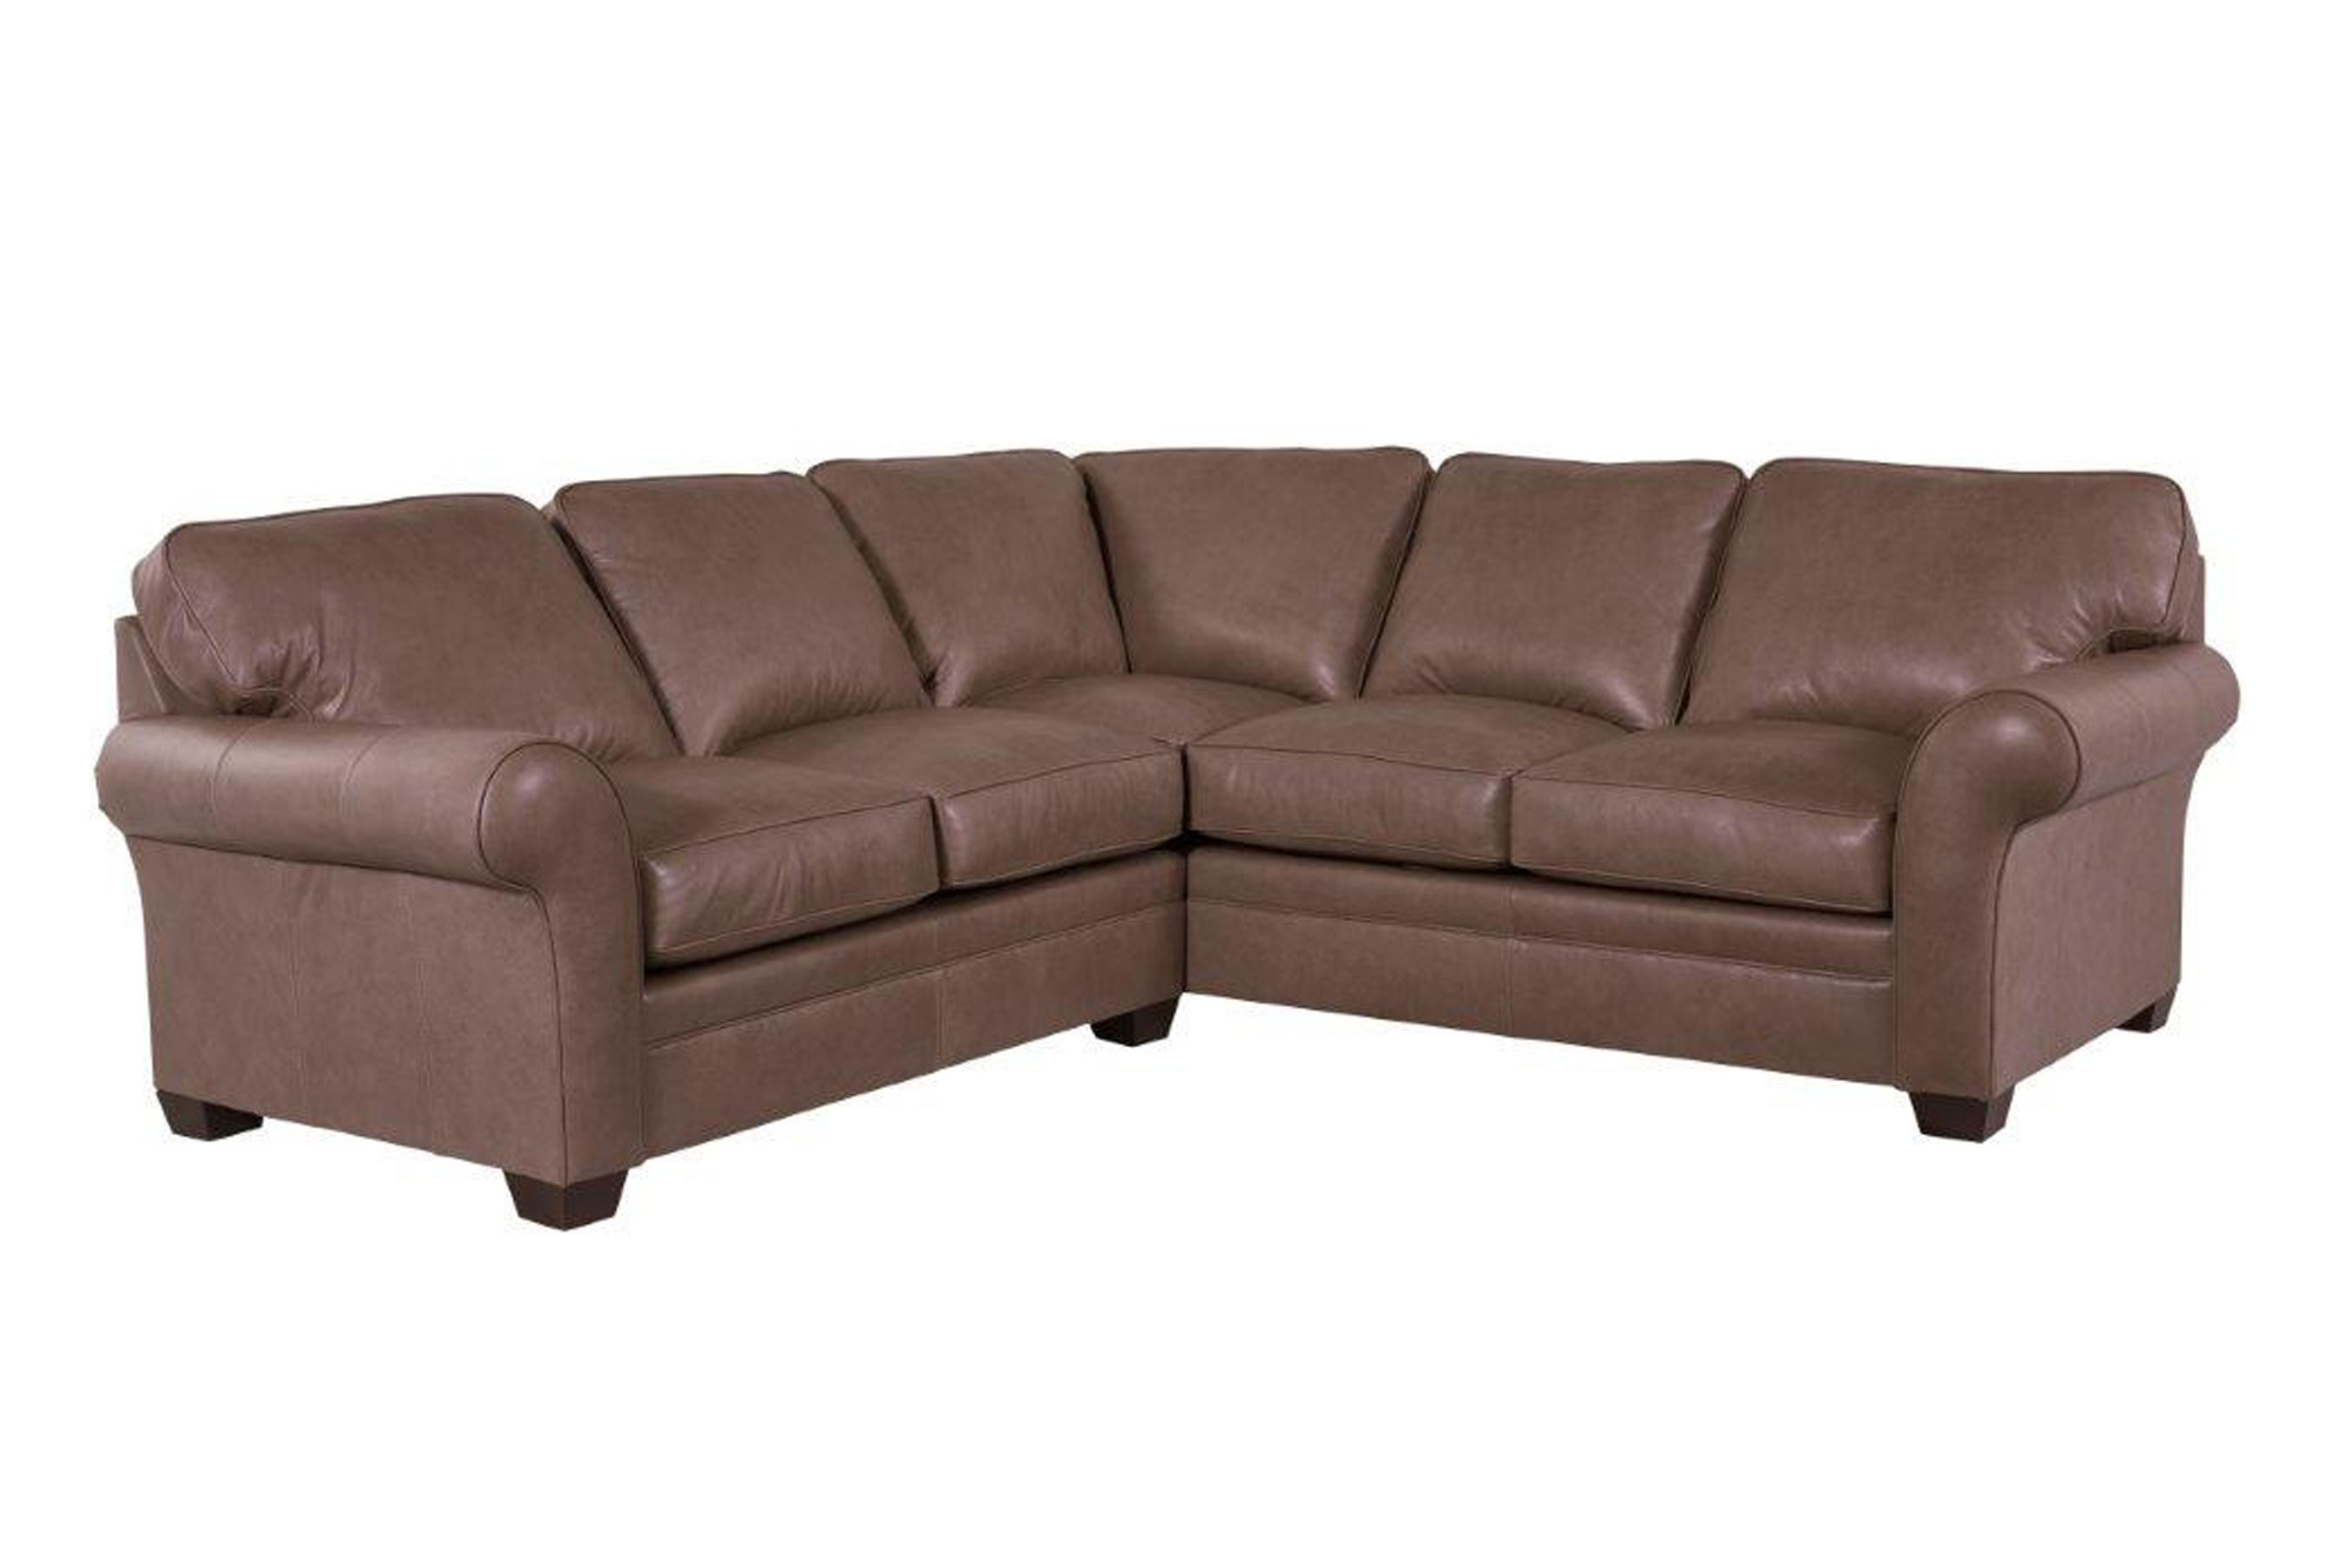 Pleasant Zachary All Leather Sectional Sofas And Sectionals Lamtechconsult Wood Chair Design Ideas Lamtechconsultcom